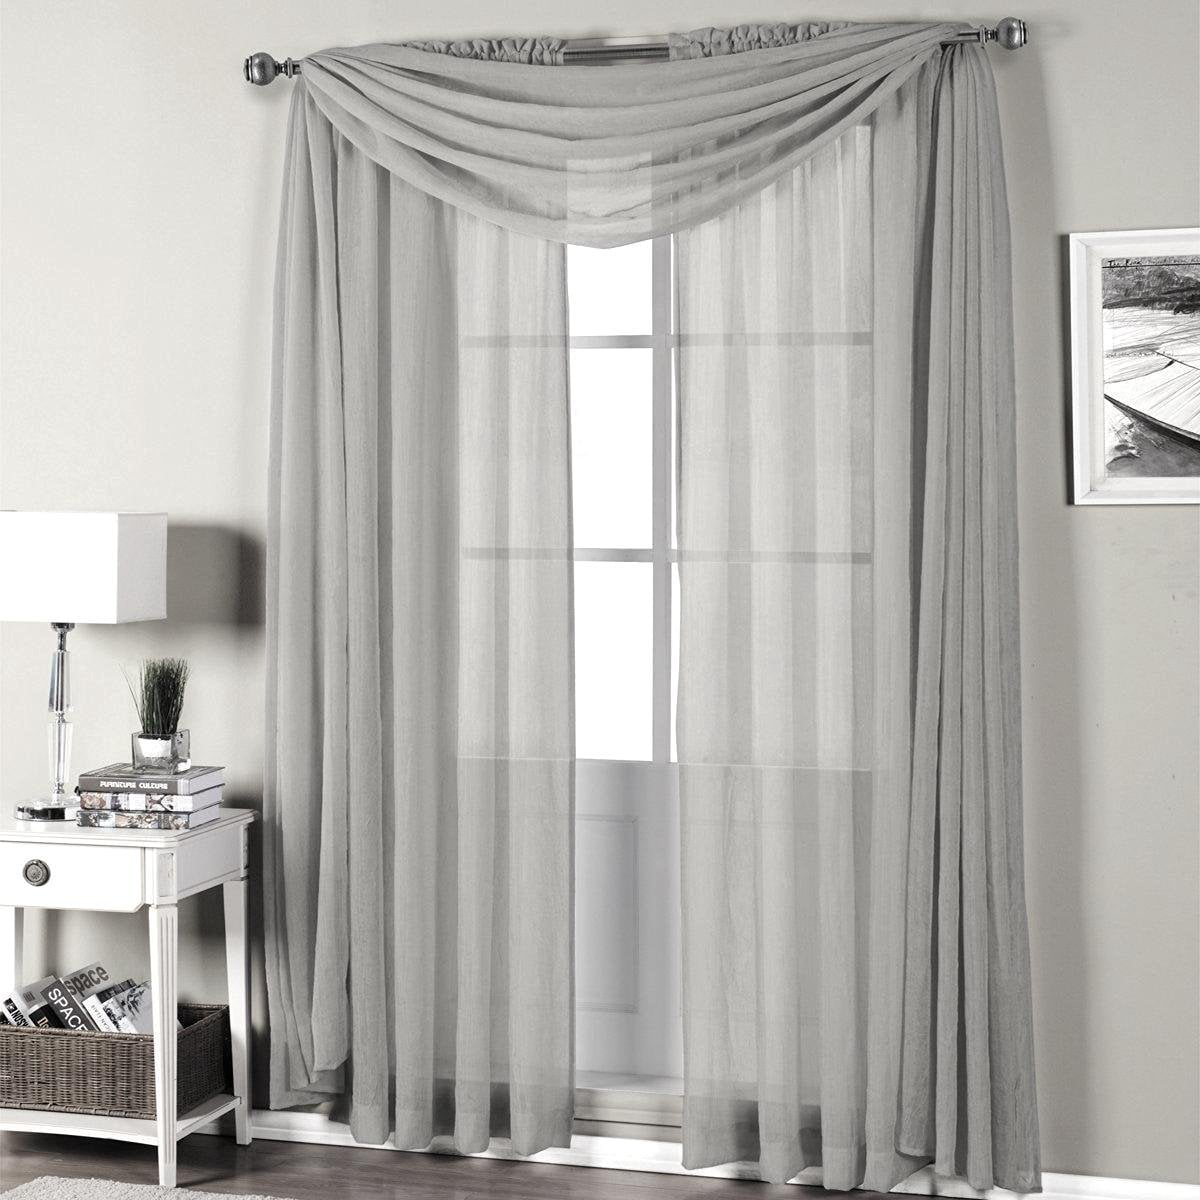 panel drapes curtain panels v blackout canvas grommet p